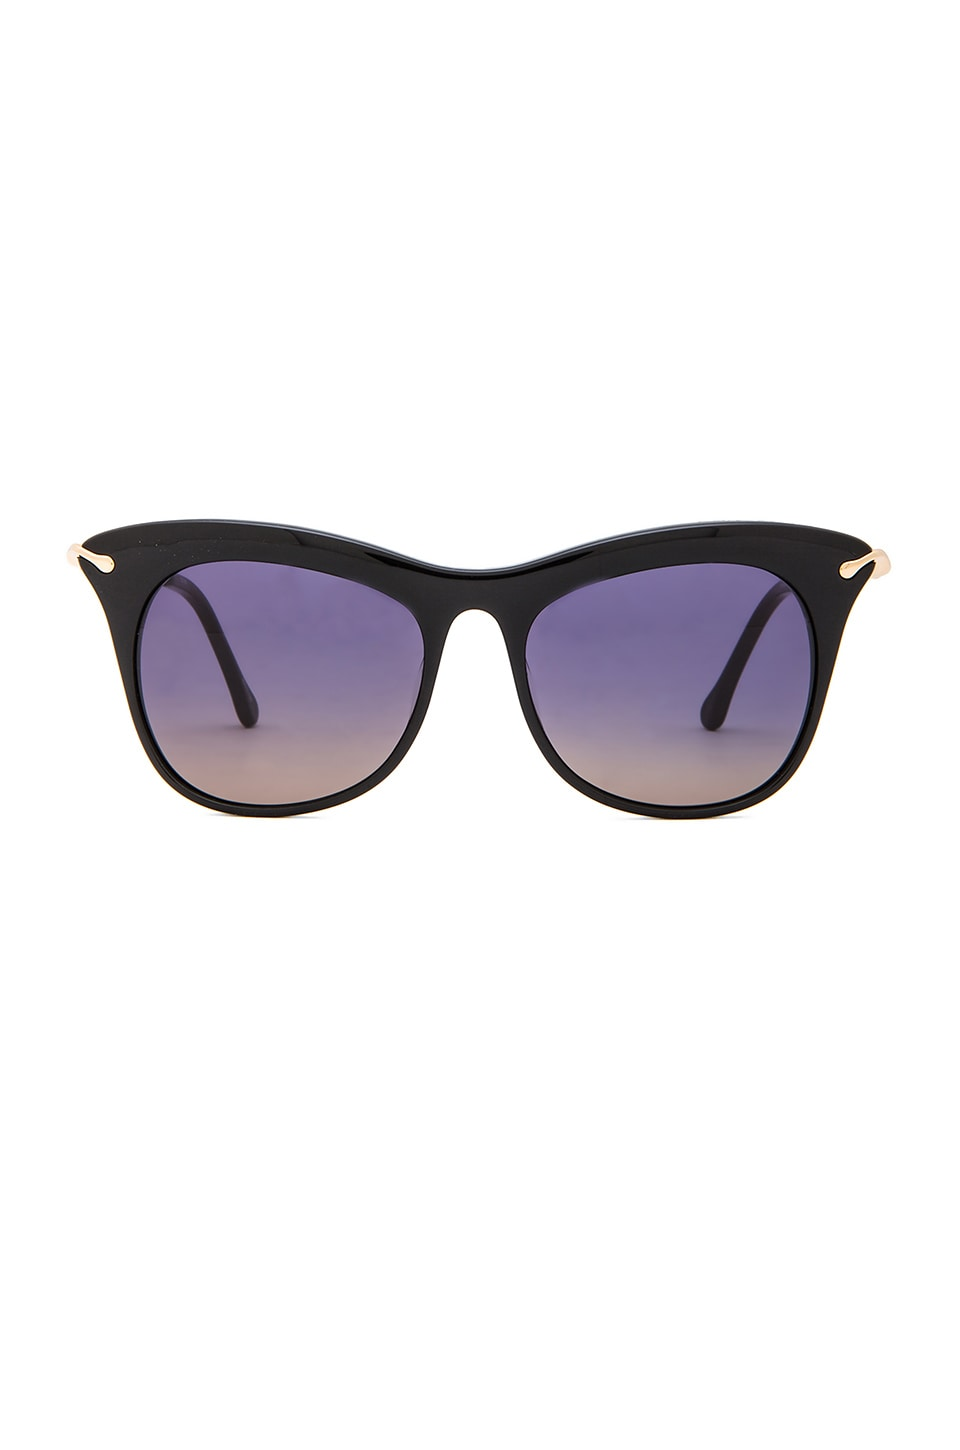 Elizabeth and James Fairfax Sunglasses in Black